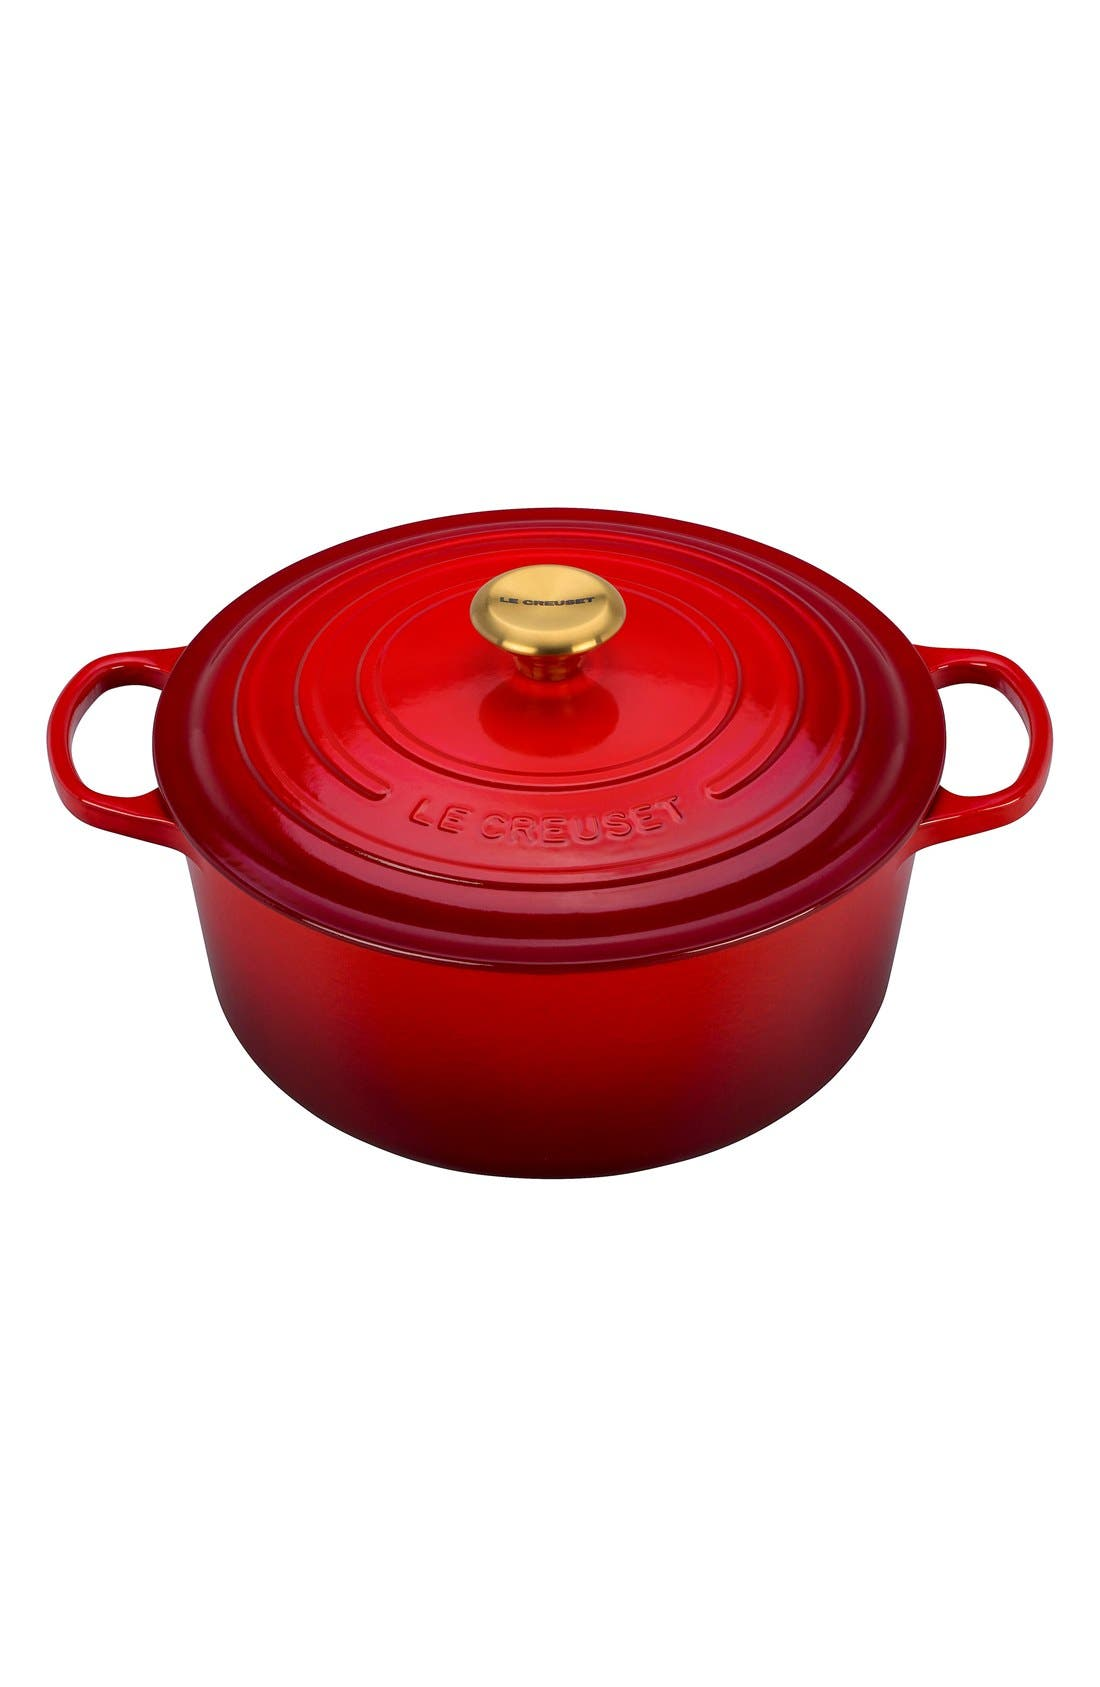 Le Creuset Gold Knob Collection 7 1/2 Quart Round French/Dutch Oven